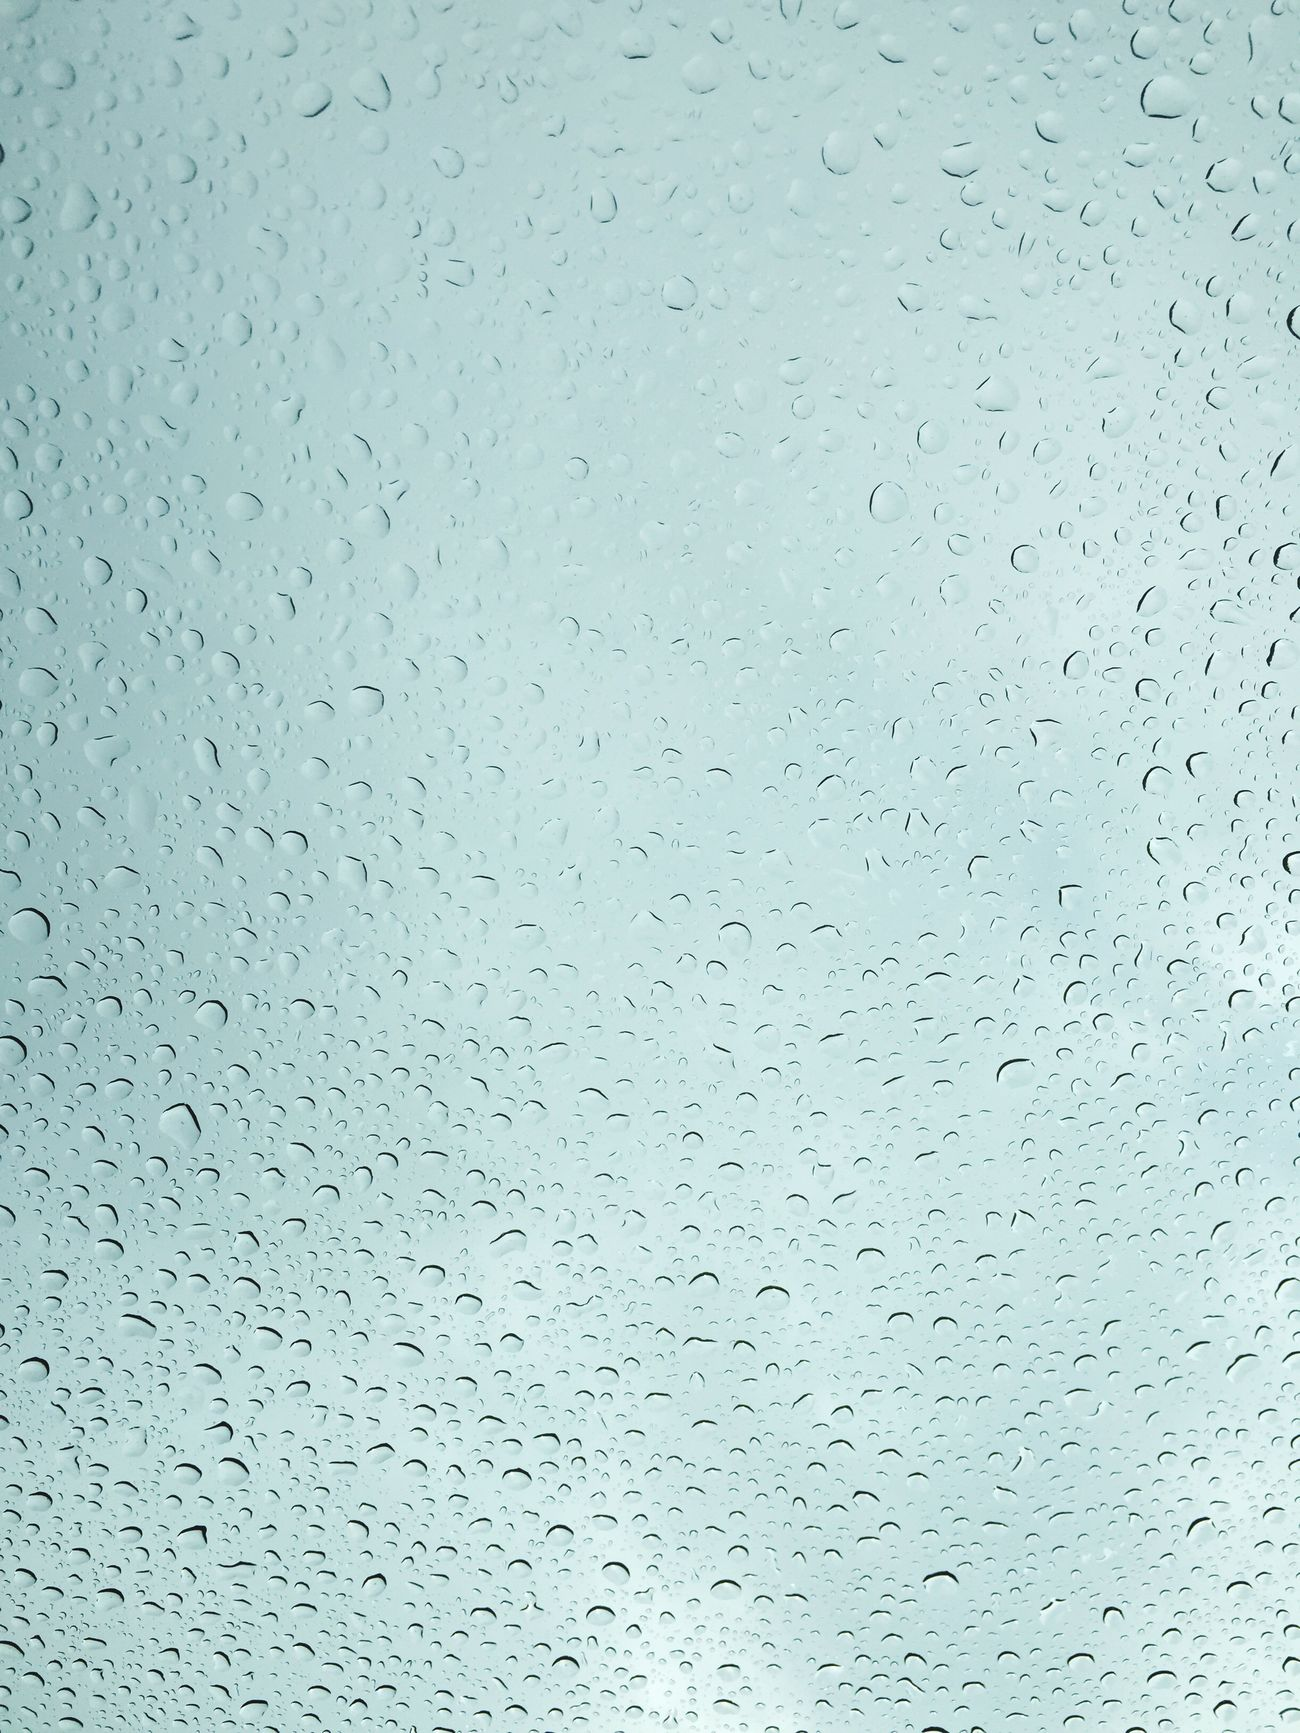 Rain on a window. Rain Wet Full Frame Drop Backgrounds RainDrop Weather Water Window No People Indoors  Textured  Close-up Day